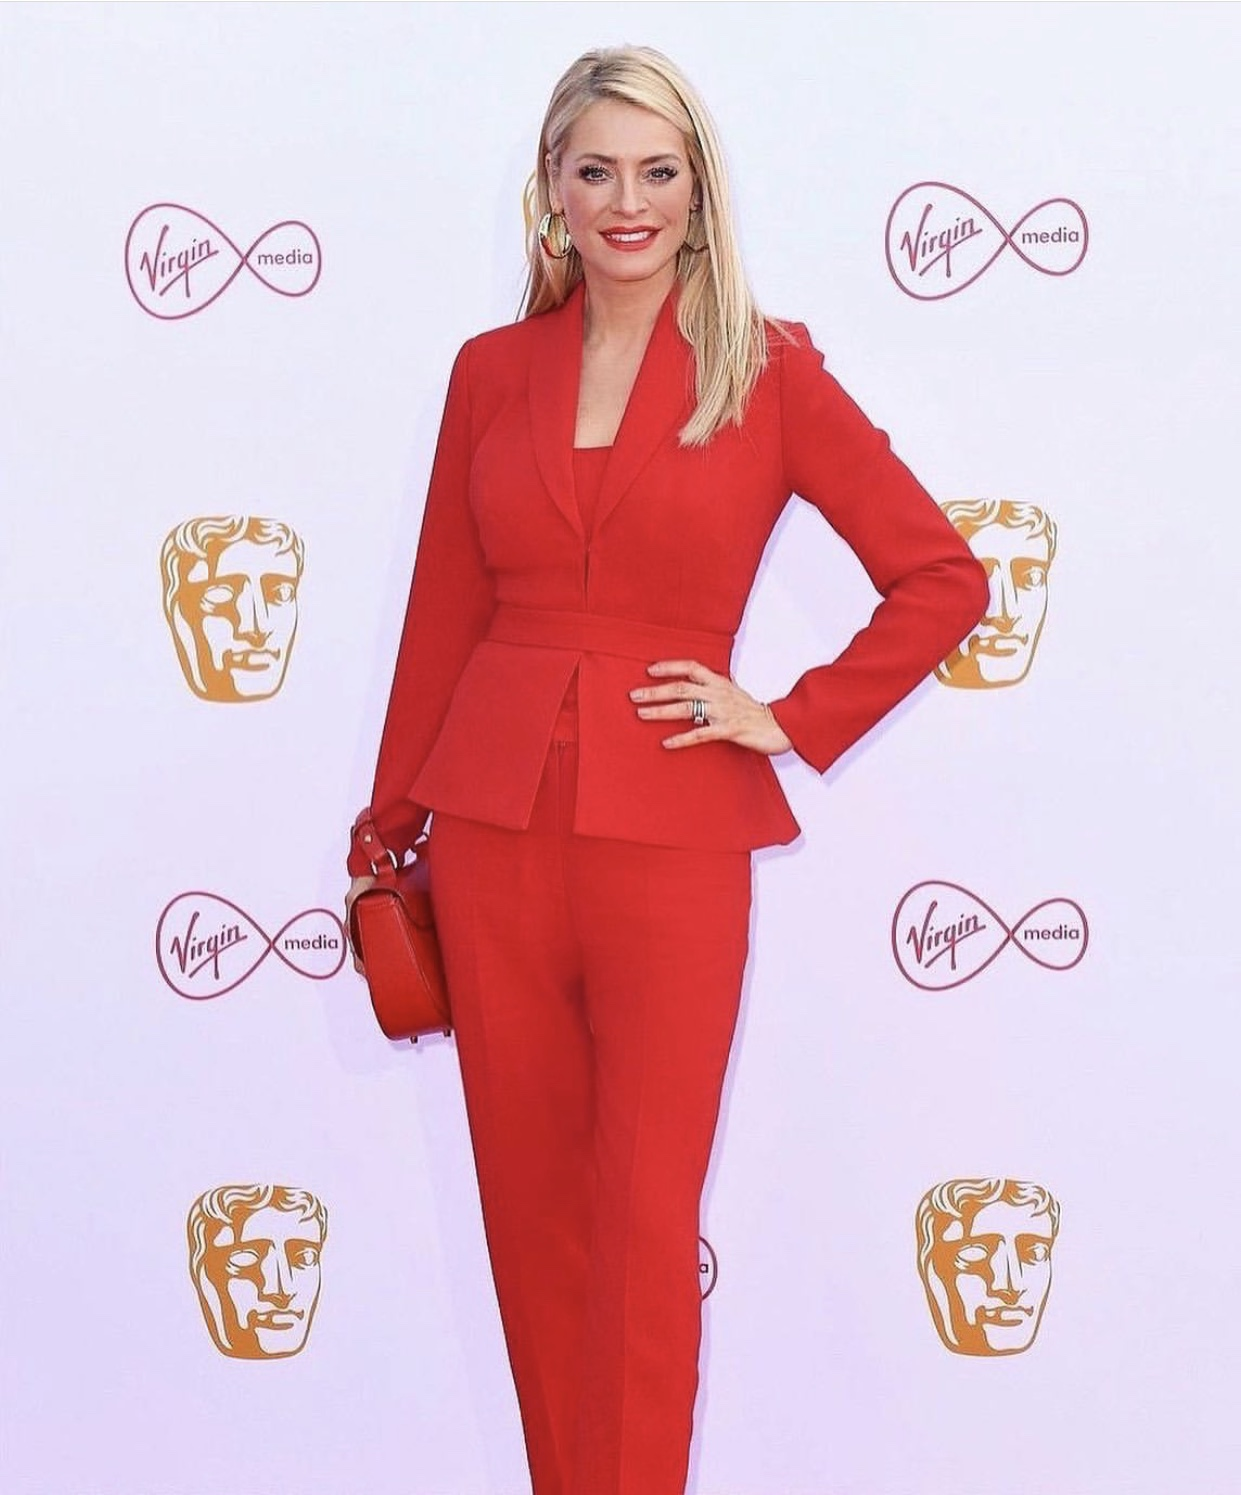 Red Carpet Fashion - Tess Daly in Red Suit - BAFTAs 2019